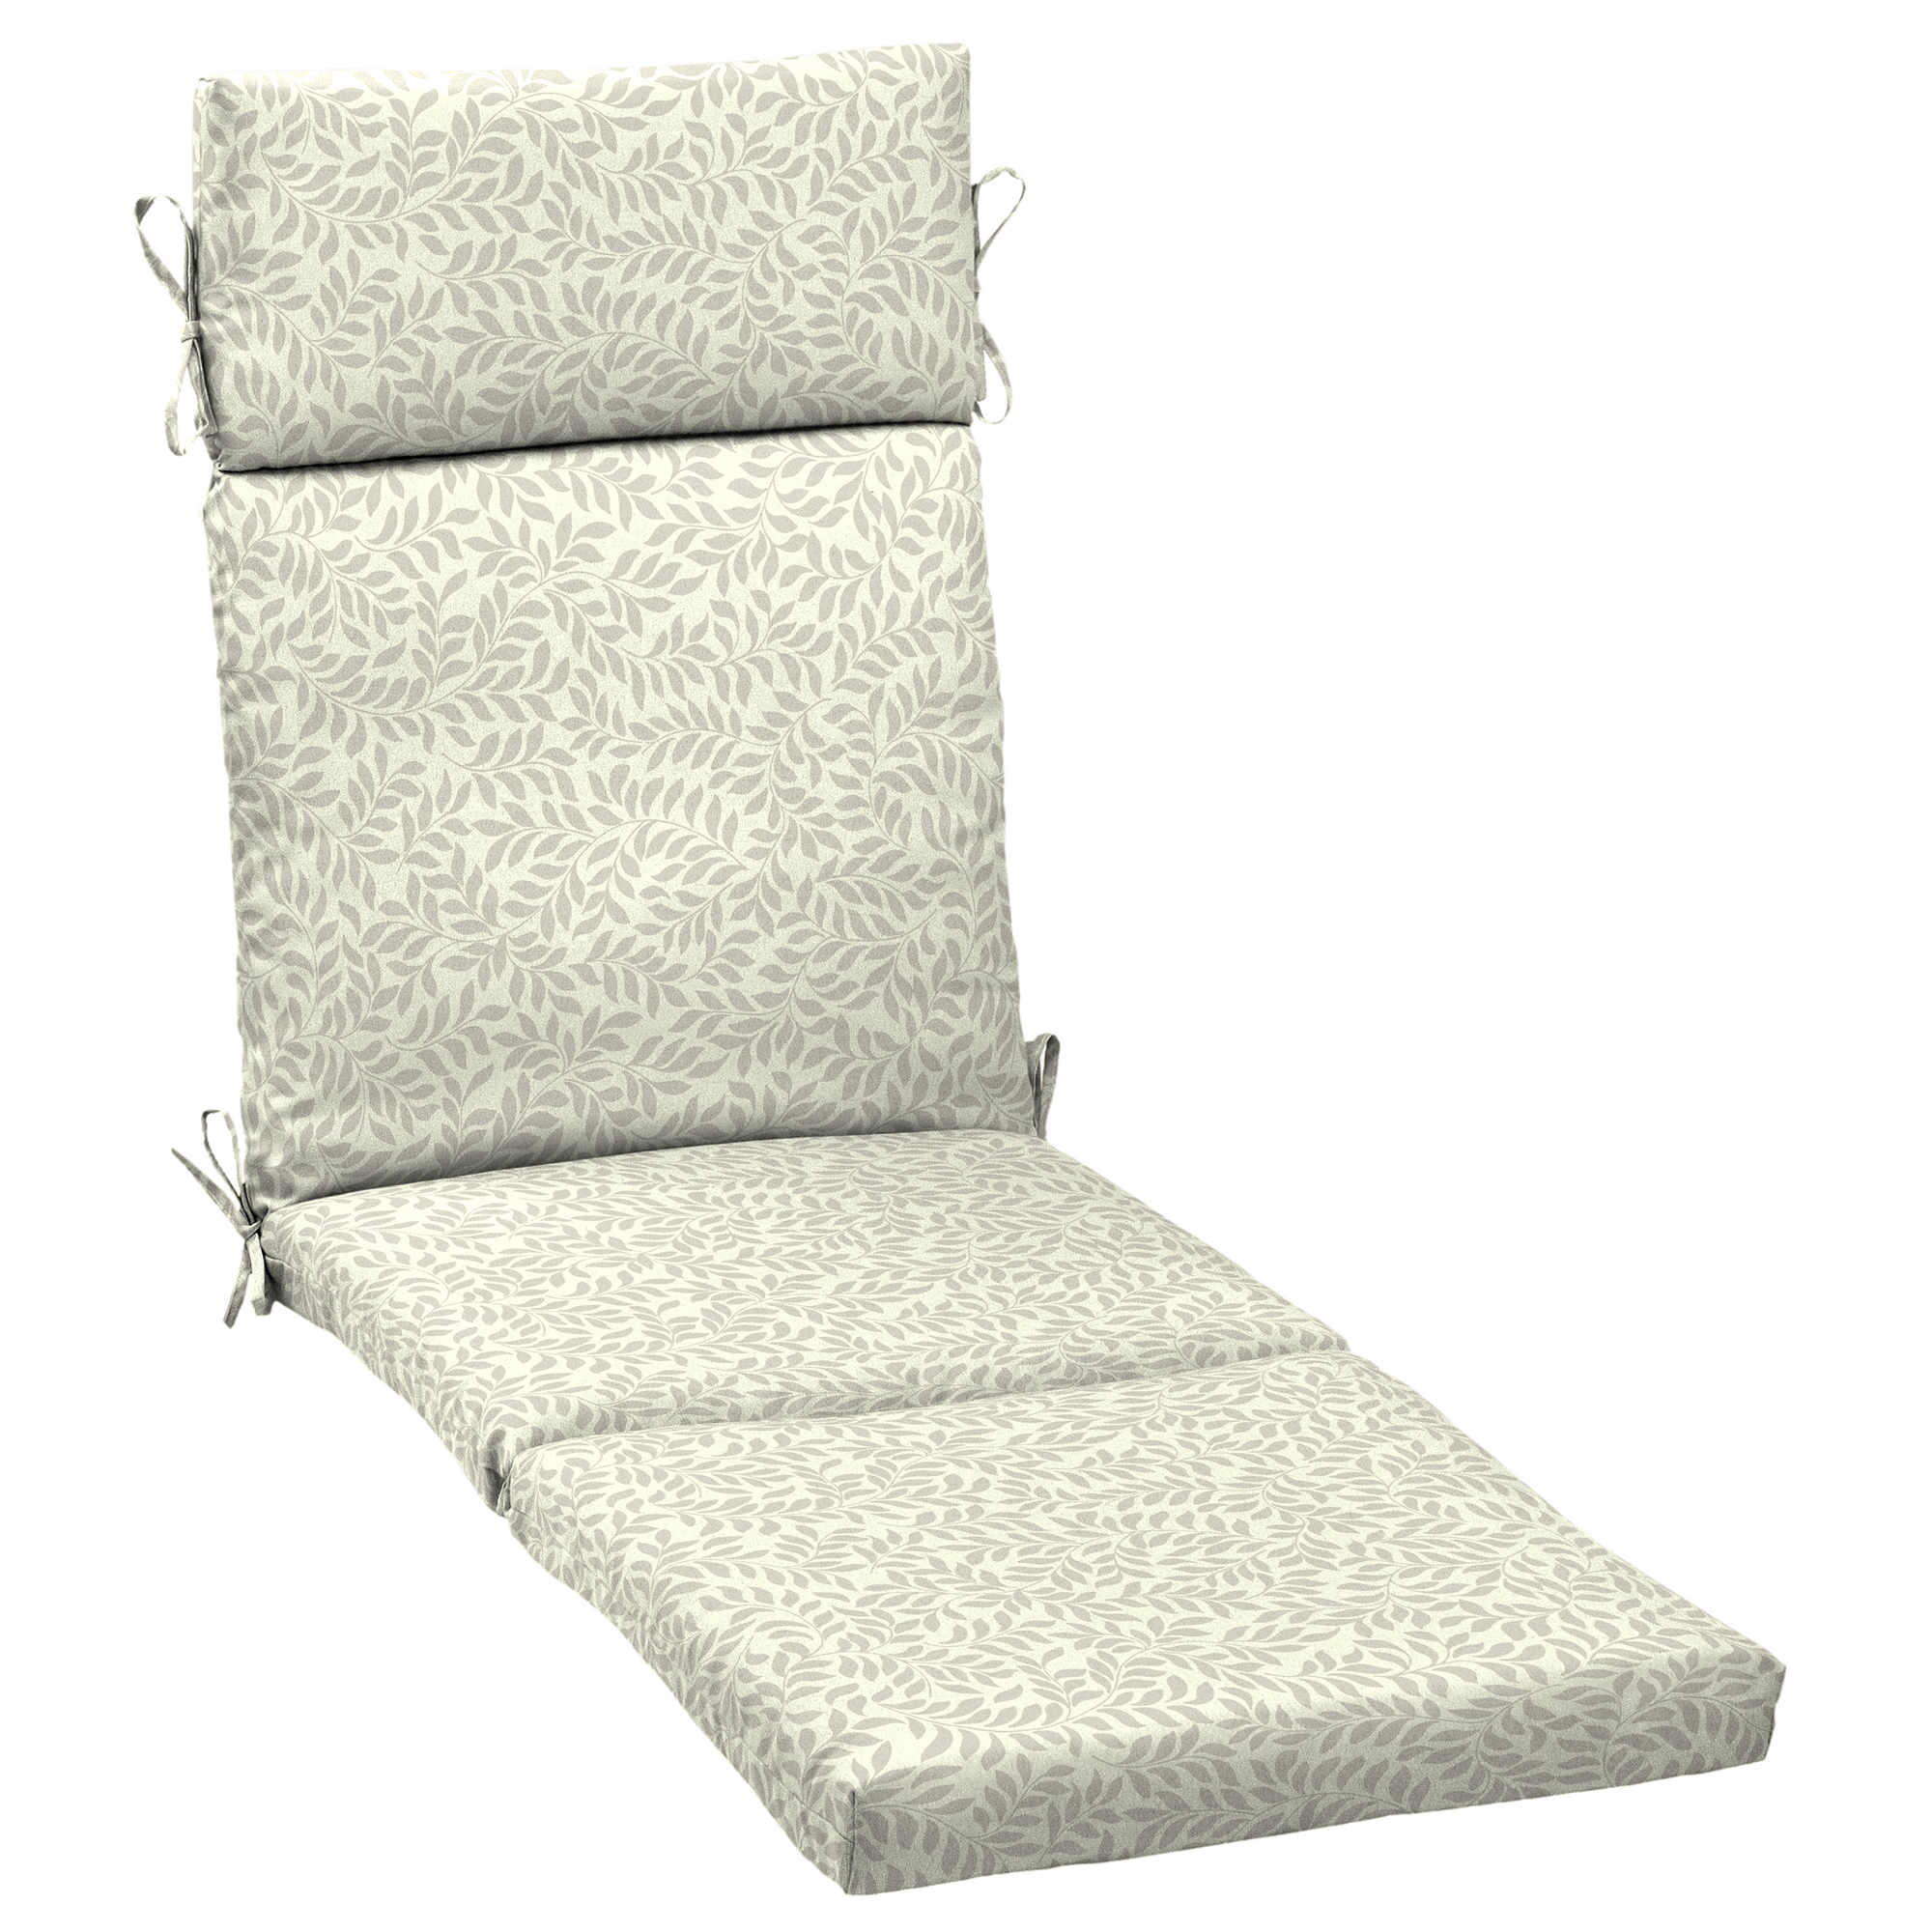 Better Homes & Gardens Ivory Leaf Outdoor Chaise Lounge Cushion